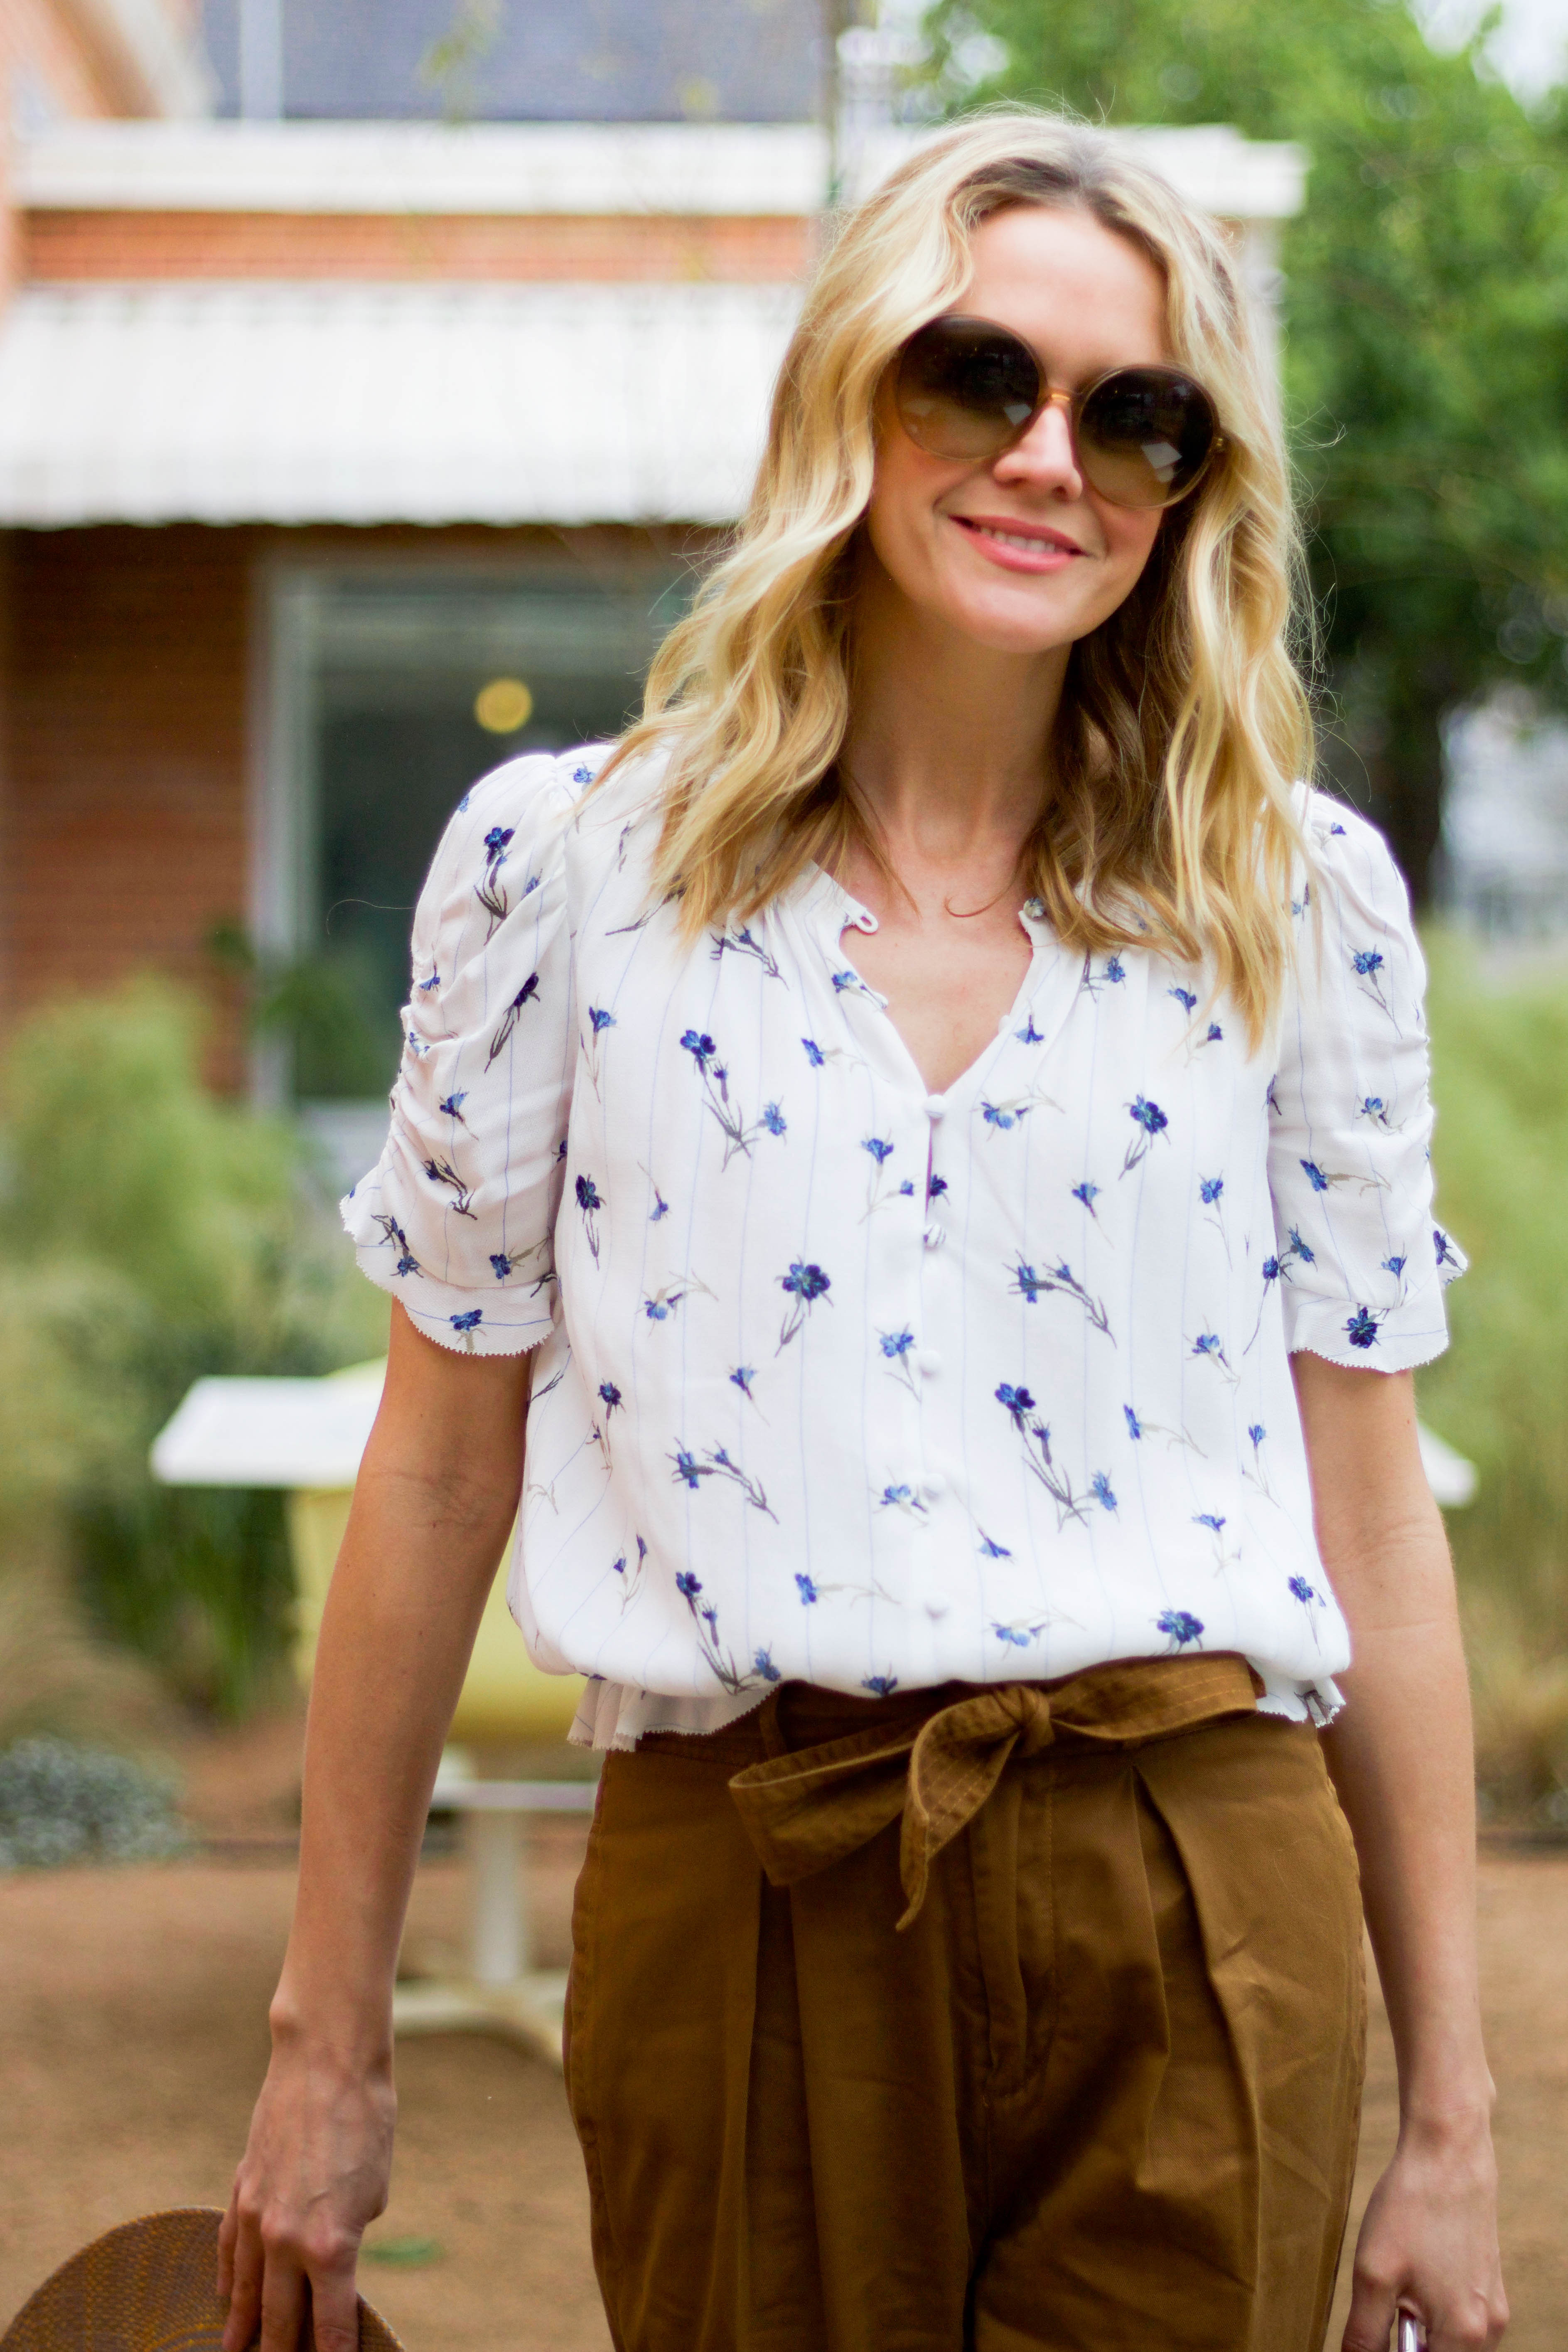 Joie floral blouse - spring look - Freya hat - easy everyday wear - spring florals - cute comfy